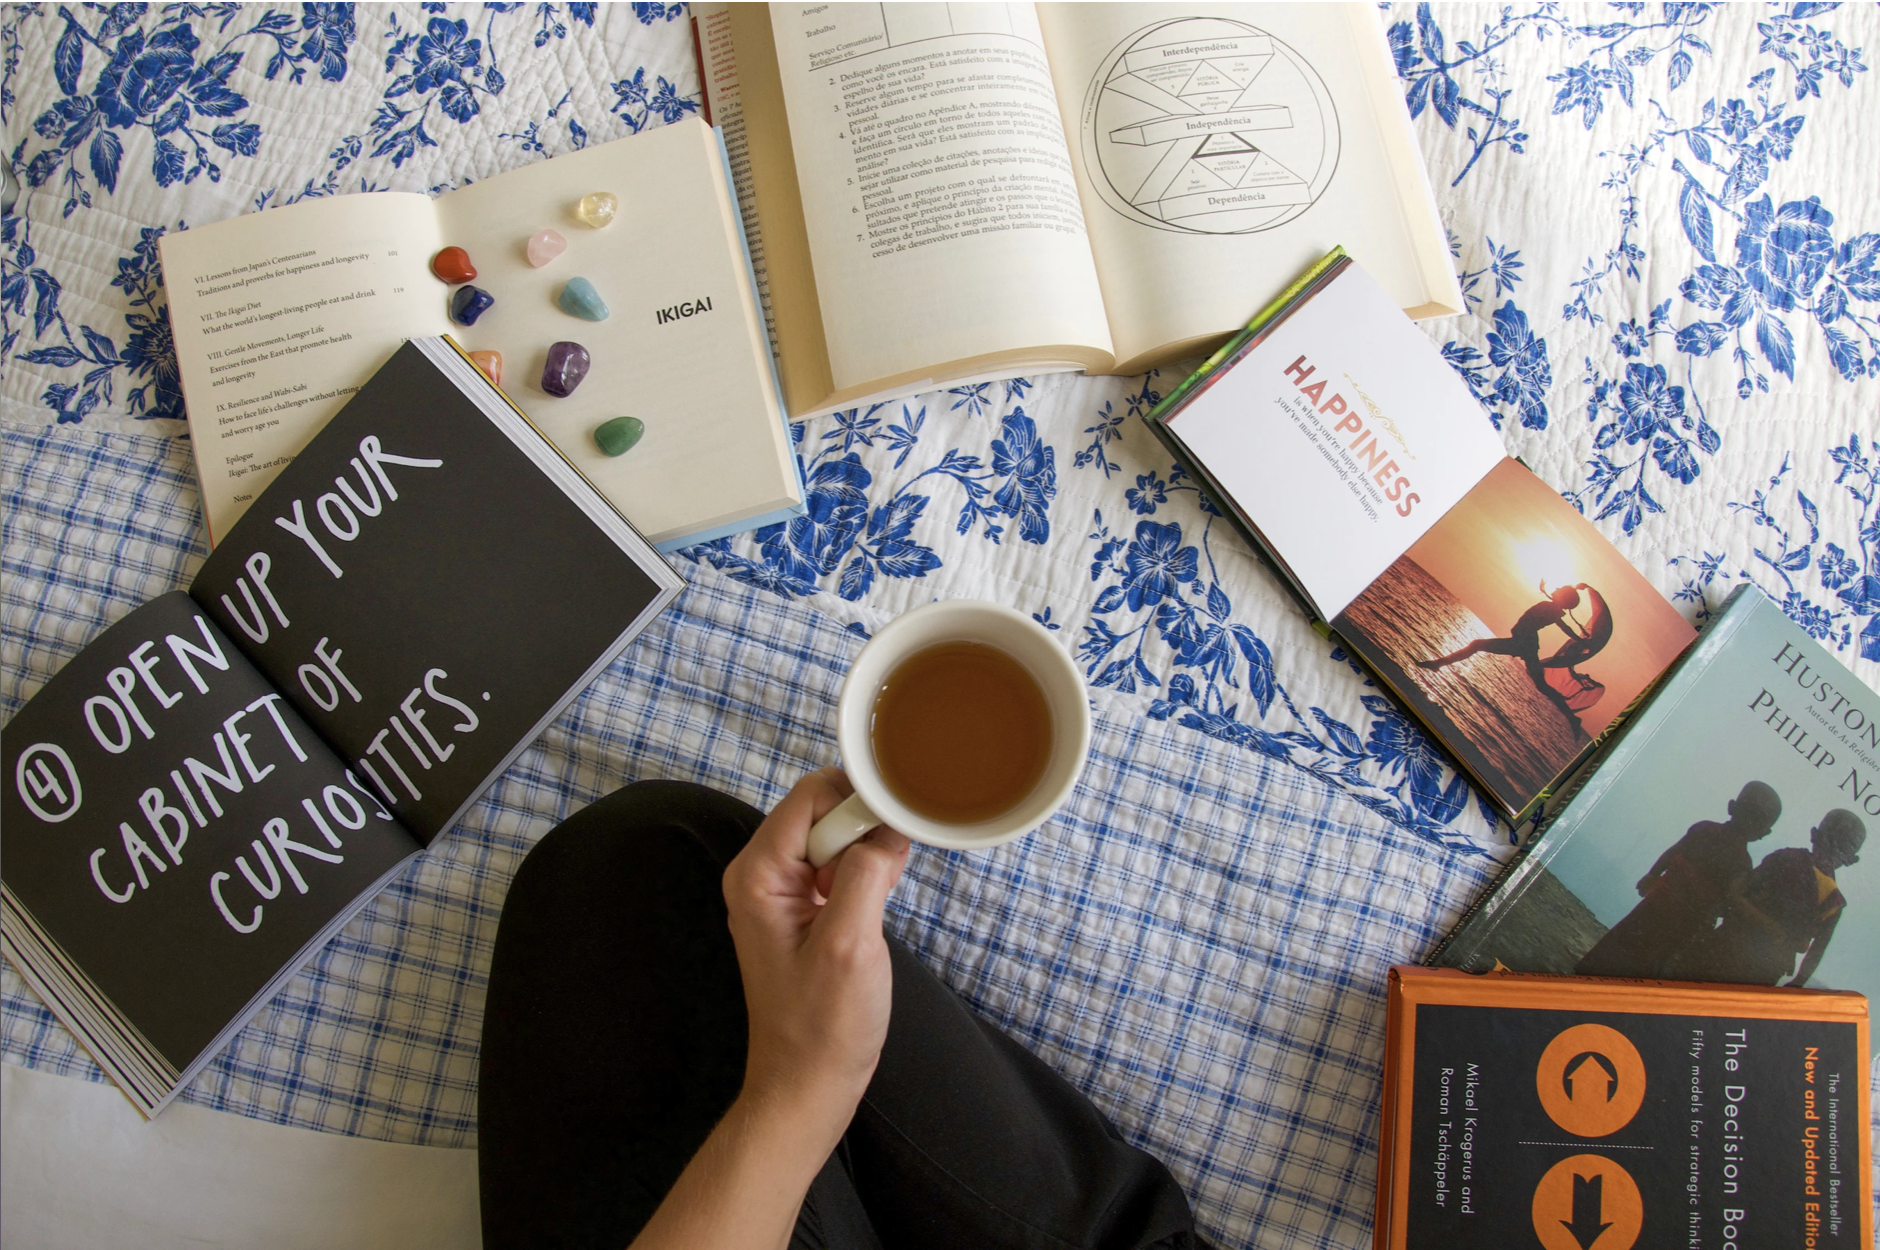 A person with a cup of tea in their hand and books on their bed